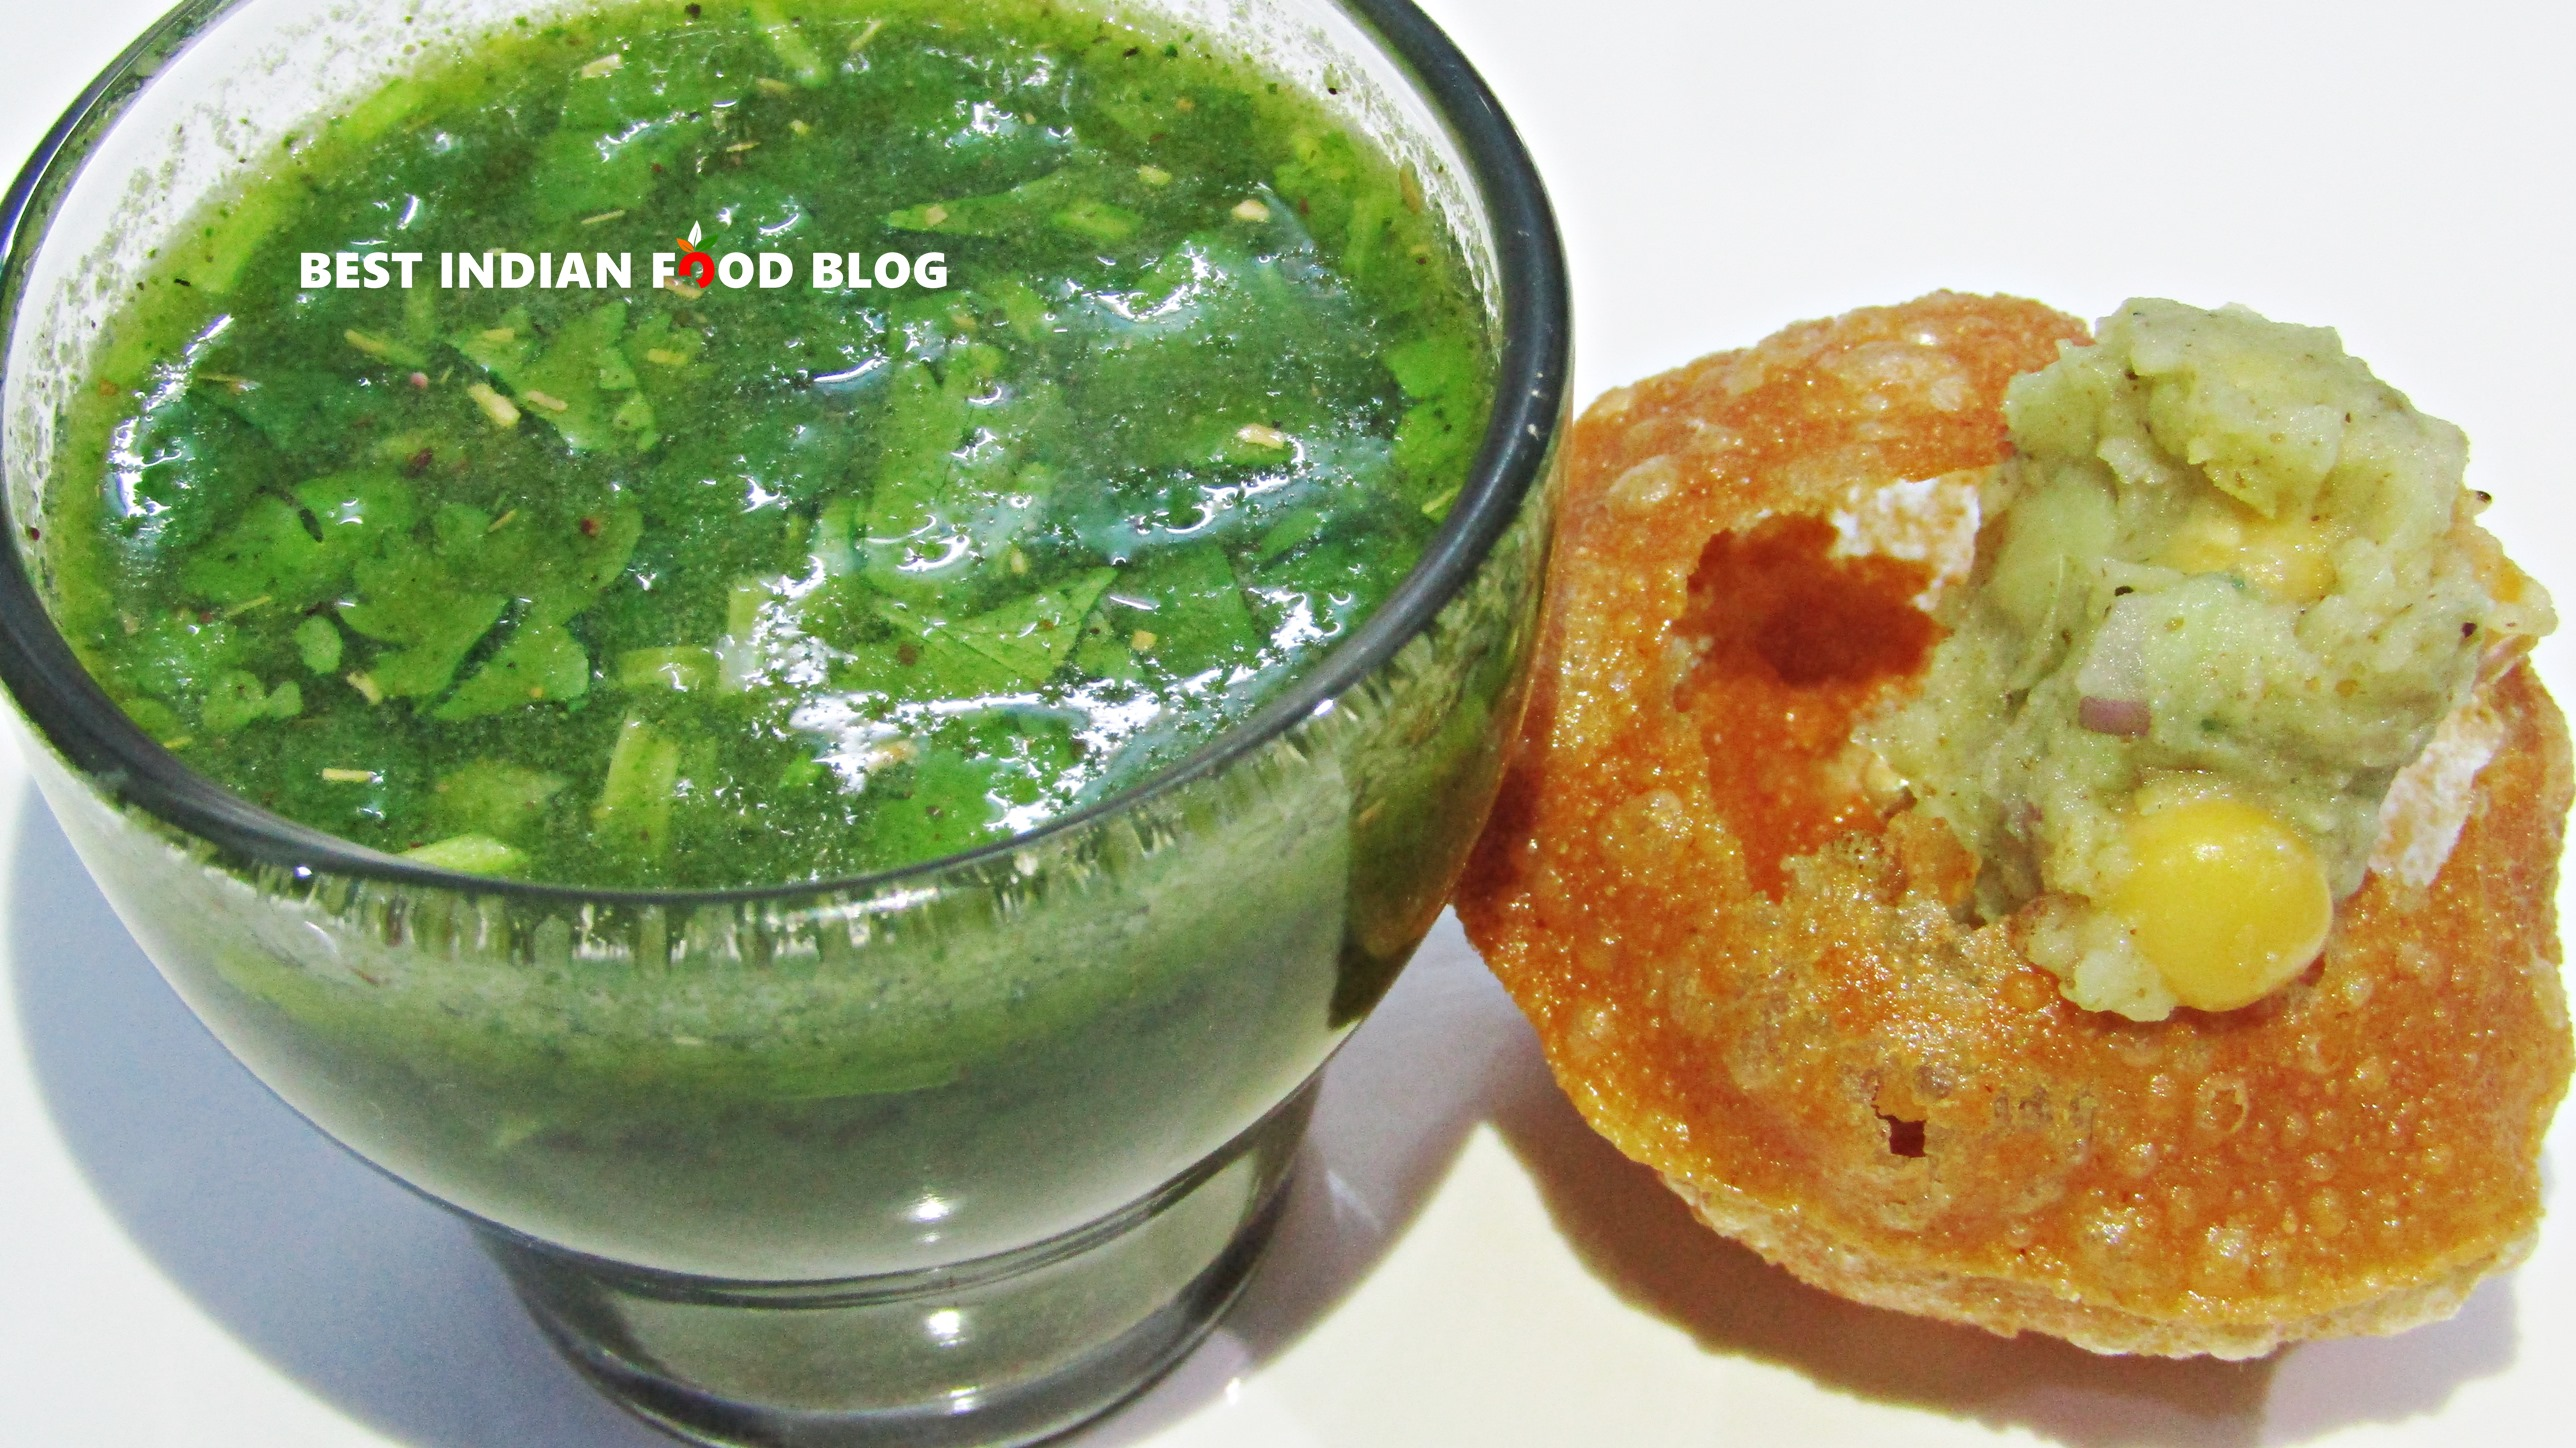 Gup Chup from Odisha, India | Best Indian Food Blog | Snacks recipe